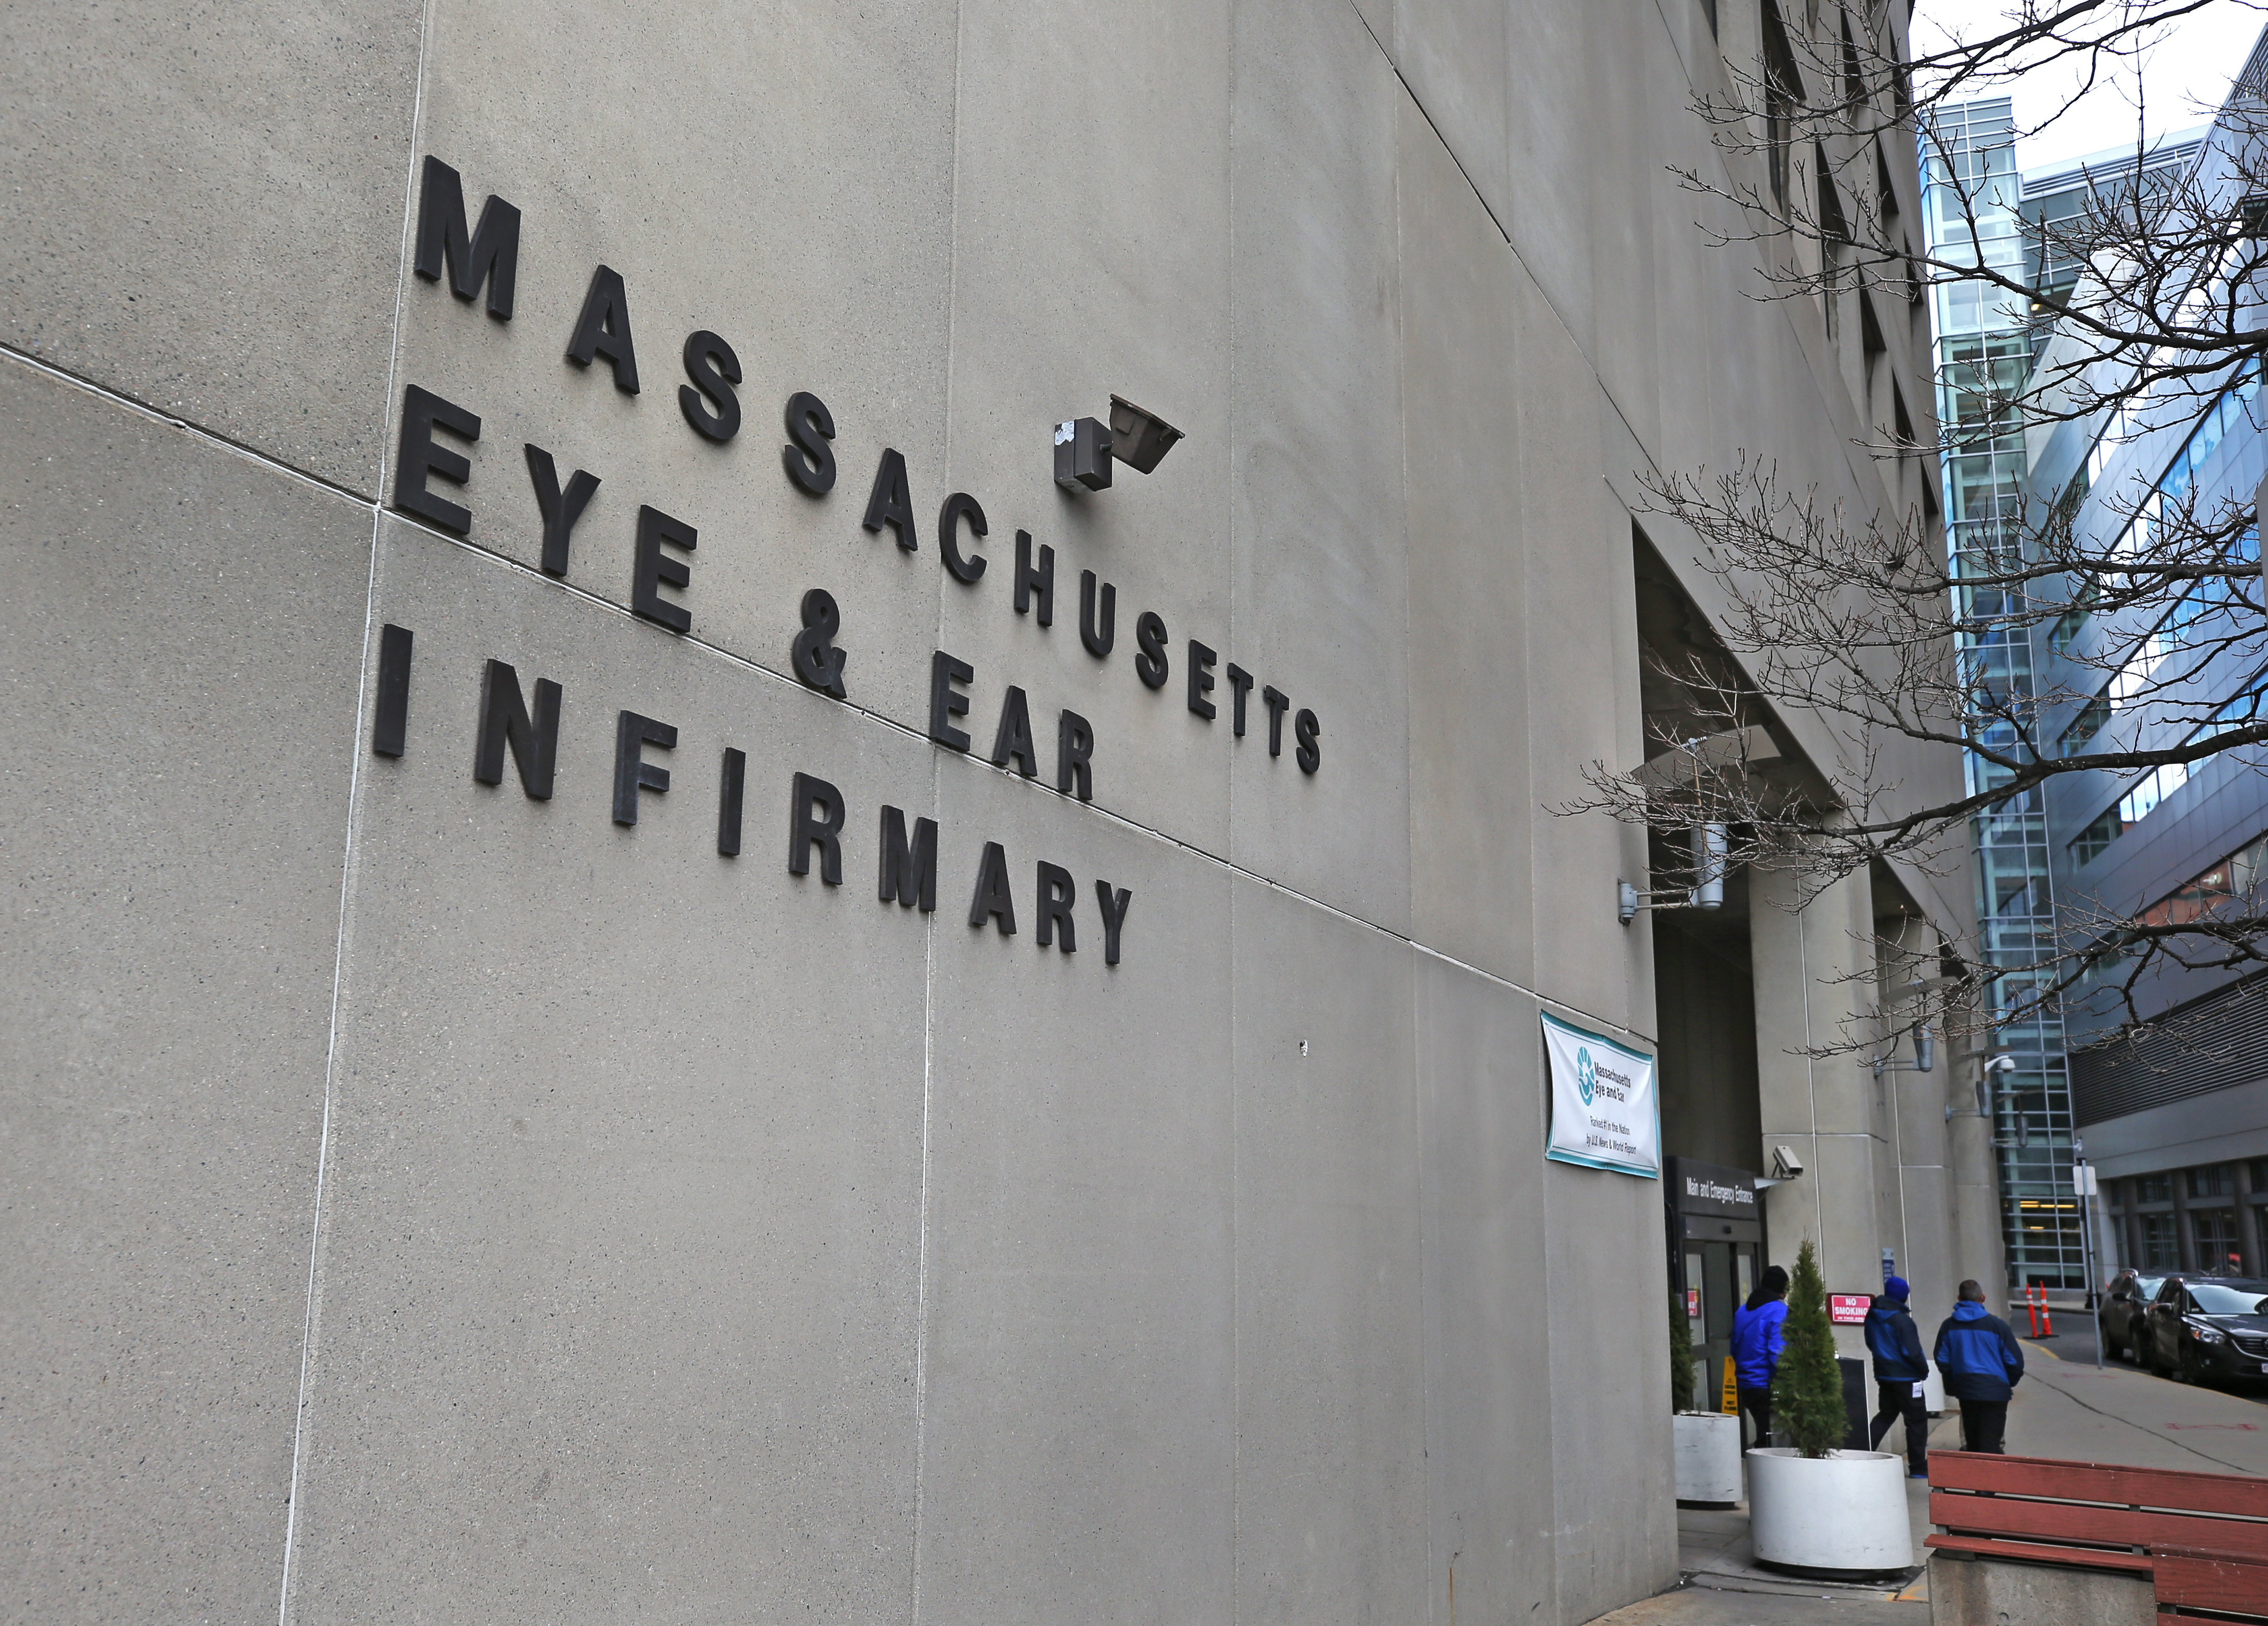 Mass  Eye and Ear says it needs larger system to thrive